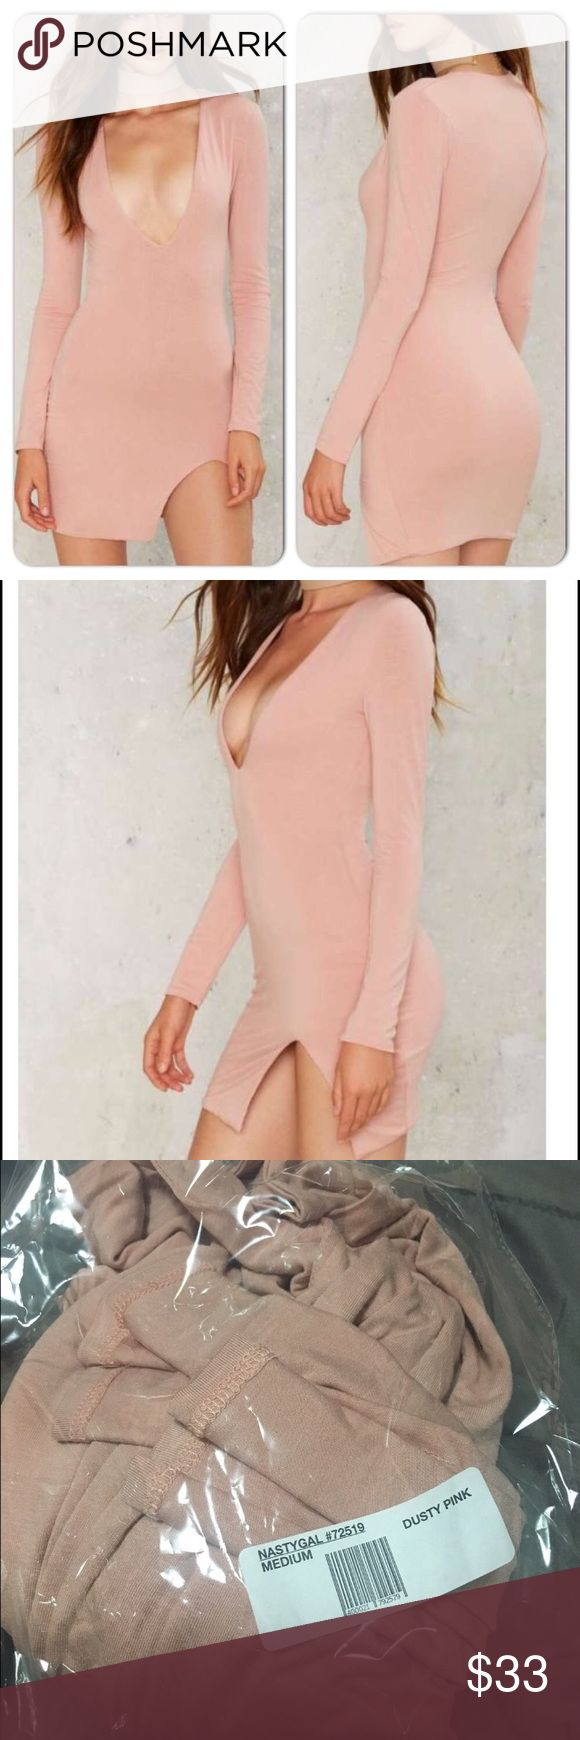 💋NWT NASTY GAL Slit Happens Pink Slit mini dress 💋NWT NAST GAL SLIT HAPPENS Stretch Mini Dress in GORGEOUS Blush Pink hue with front side slit. Nice think fabric molds your body beautifully! Size M, fits S, M. Retail $86. Also available; ASOS, Zara, For Love & Lemons, Free People, Anthropologie, Urban Outfitters, J. Crew, Sabo Skirt, Tobi, Lulu's & more💋 Nasty Gal Dresses Mini